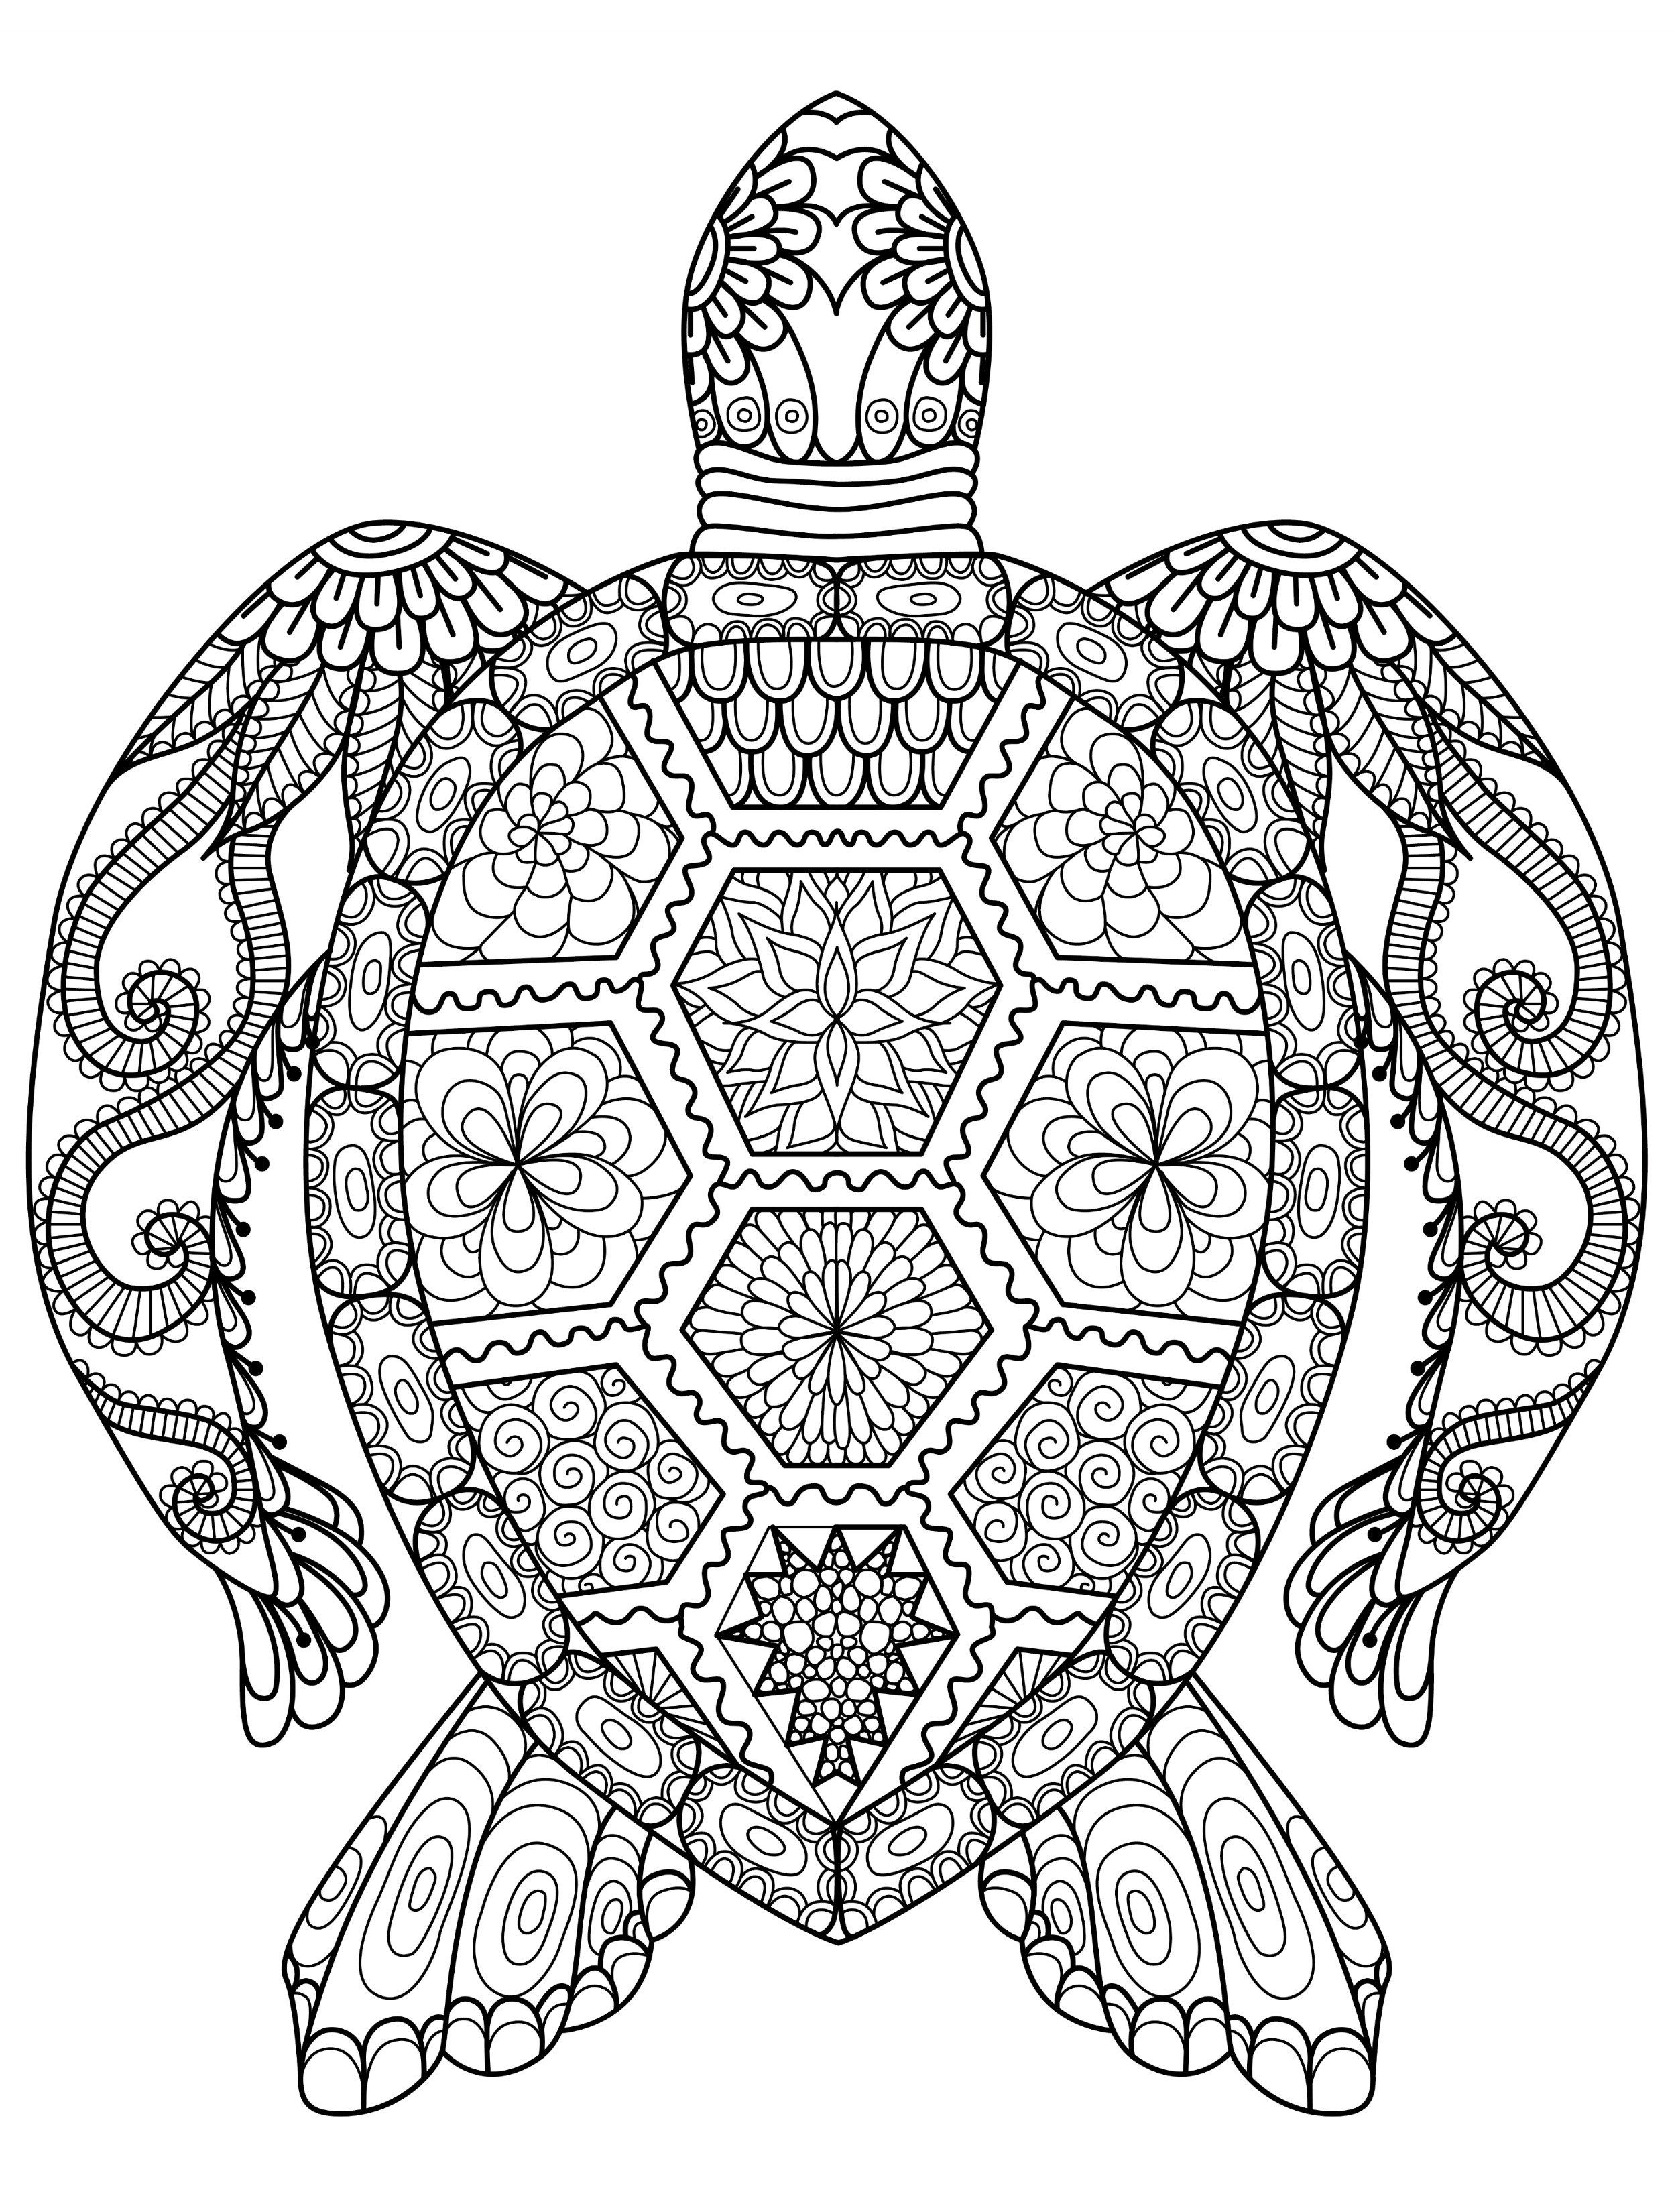 cool pictures to print cool printable coloring pages for adults at getdrawings to print cool pictures